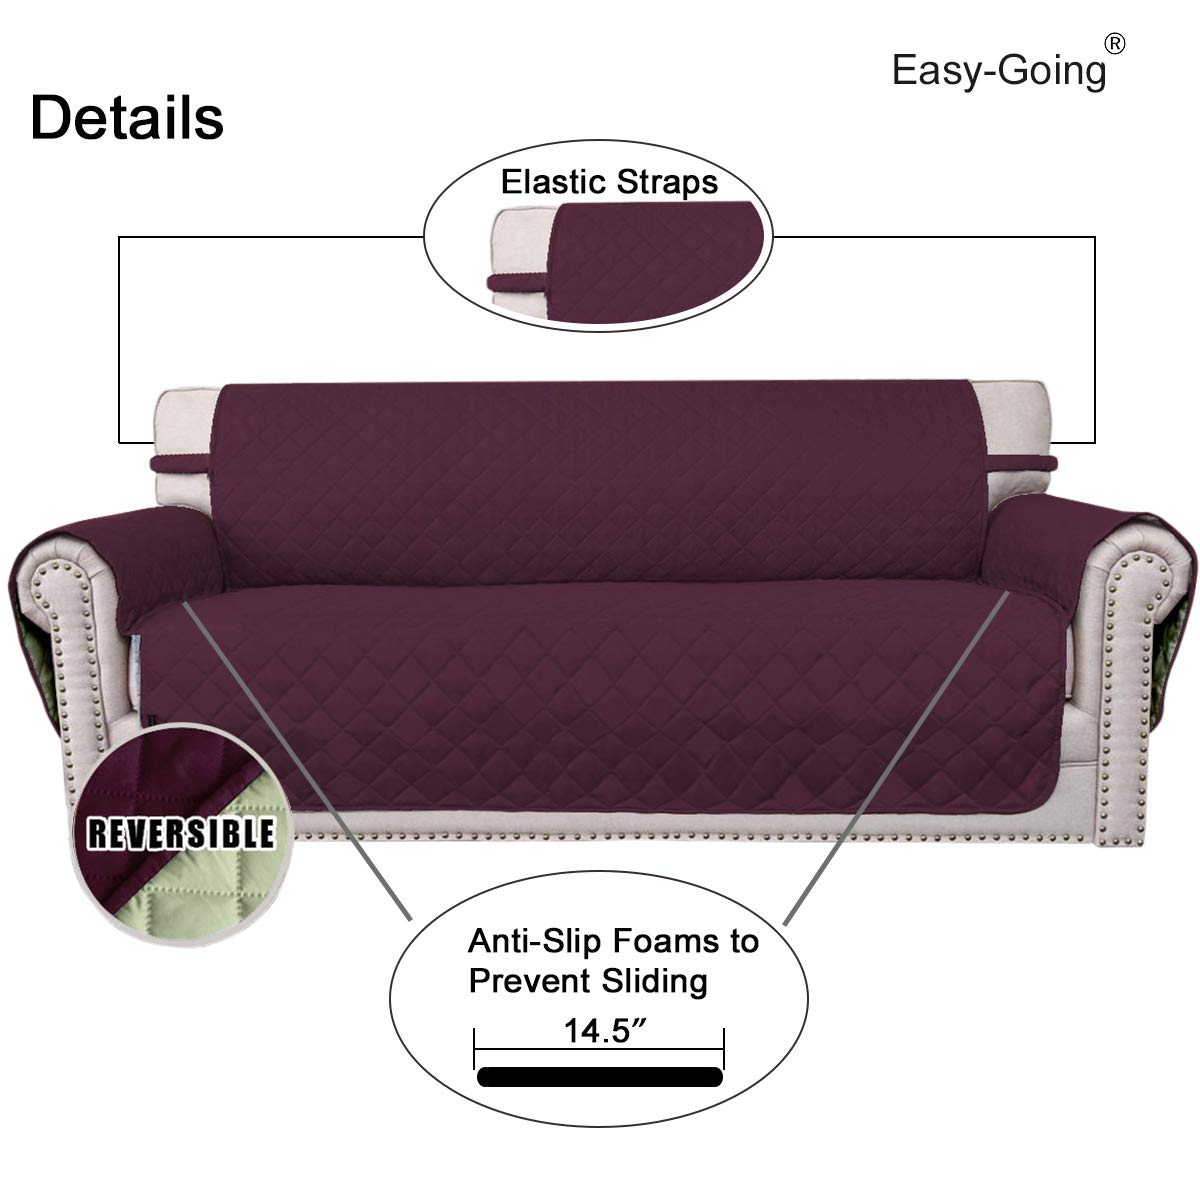 Easy-Going Sofa Slipcover Reversible Sofa Cover Furniture Protector Couch Cover Elastic Straps Pets/Kids/Children/Dog/Cat/ Oversized Sofa,/Chocolate//Beige